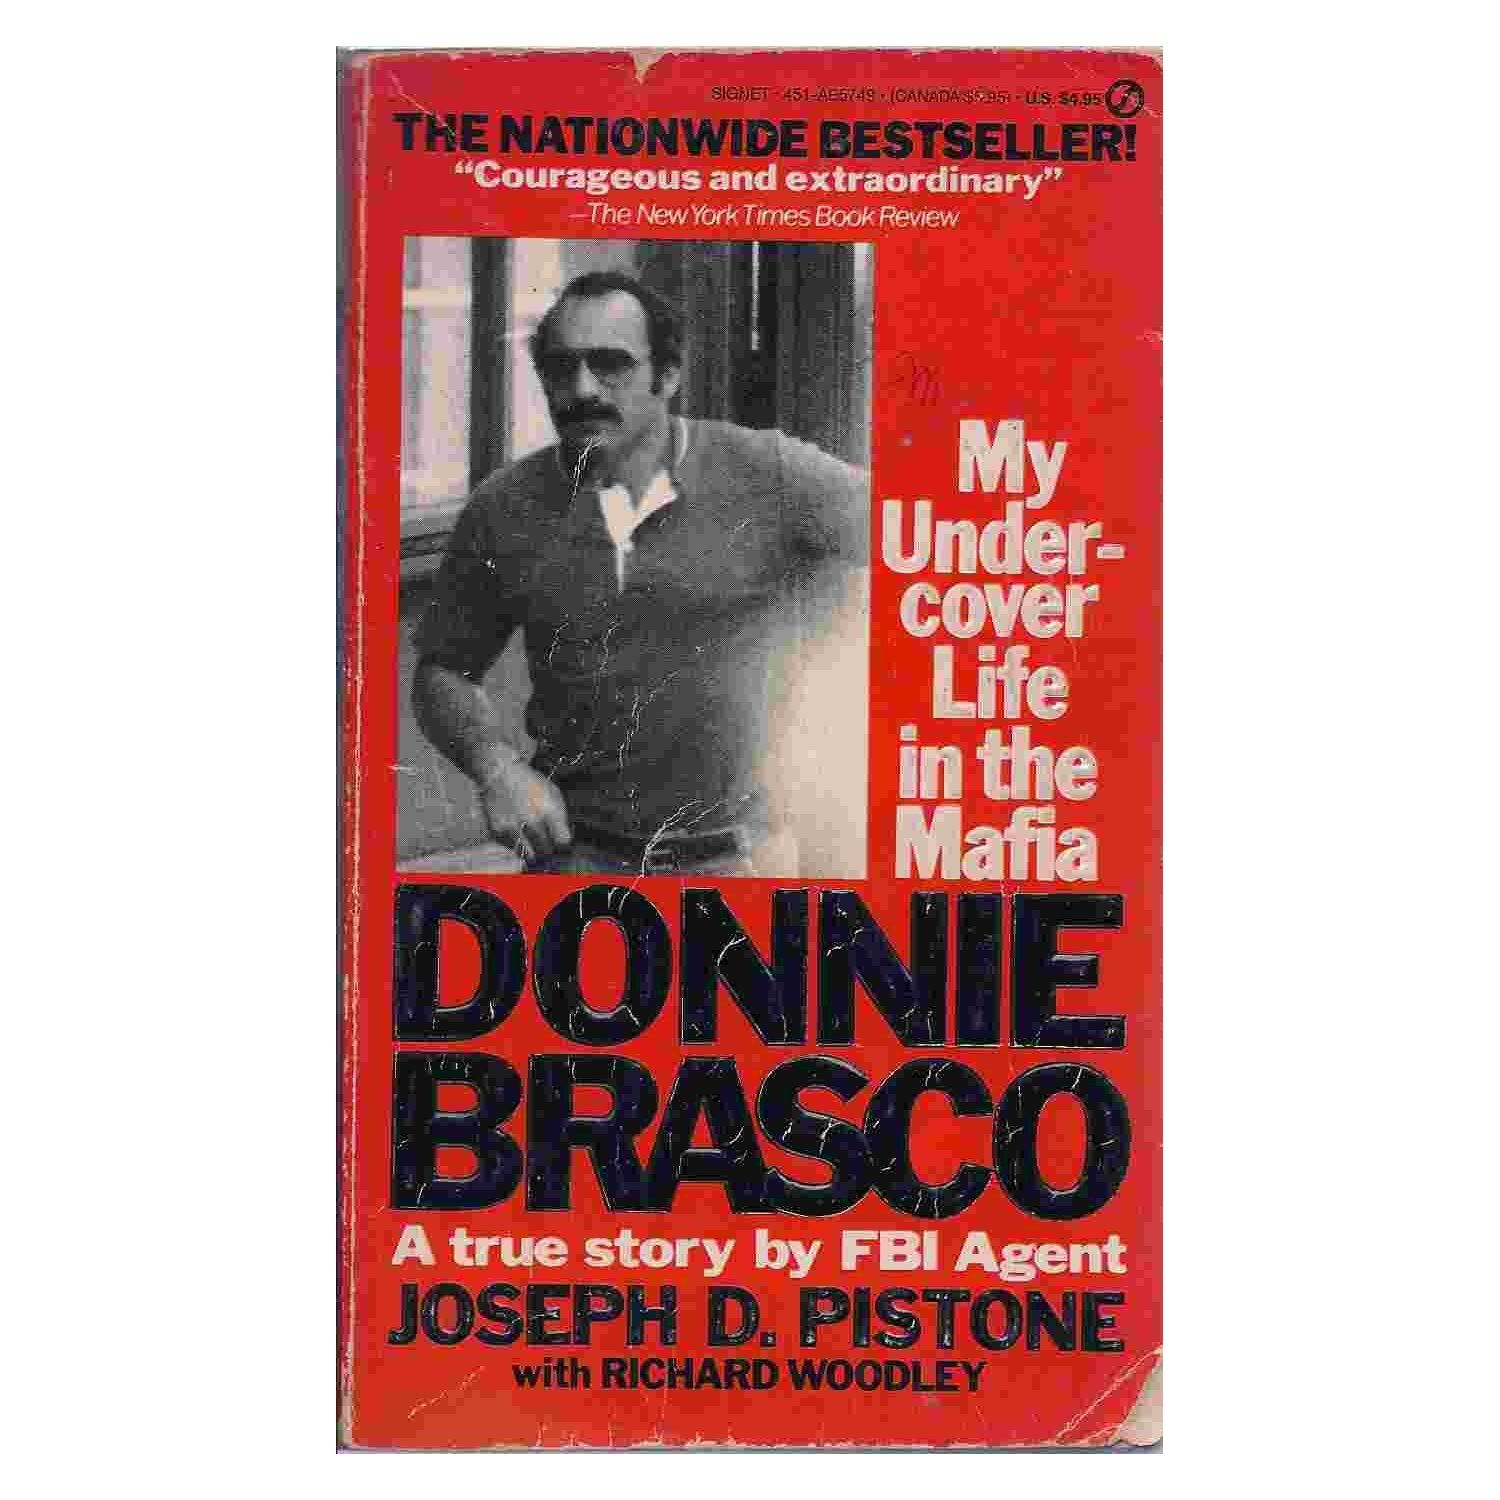 an analysis of the book of donnie brasco An fbi undercover agent infiltrates the mob and finds himself identifying more with the mafia life, at the expense of his regular one.